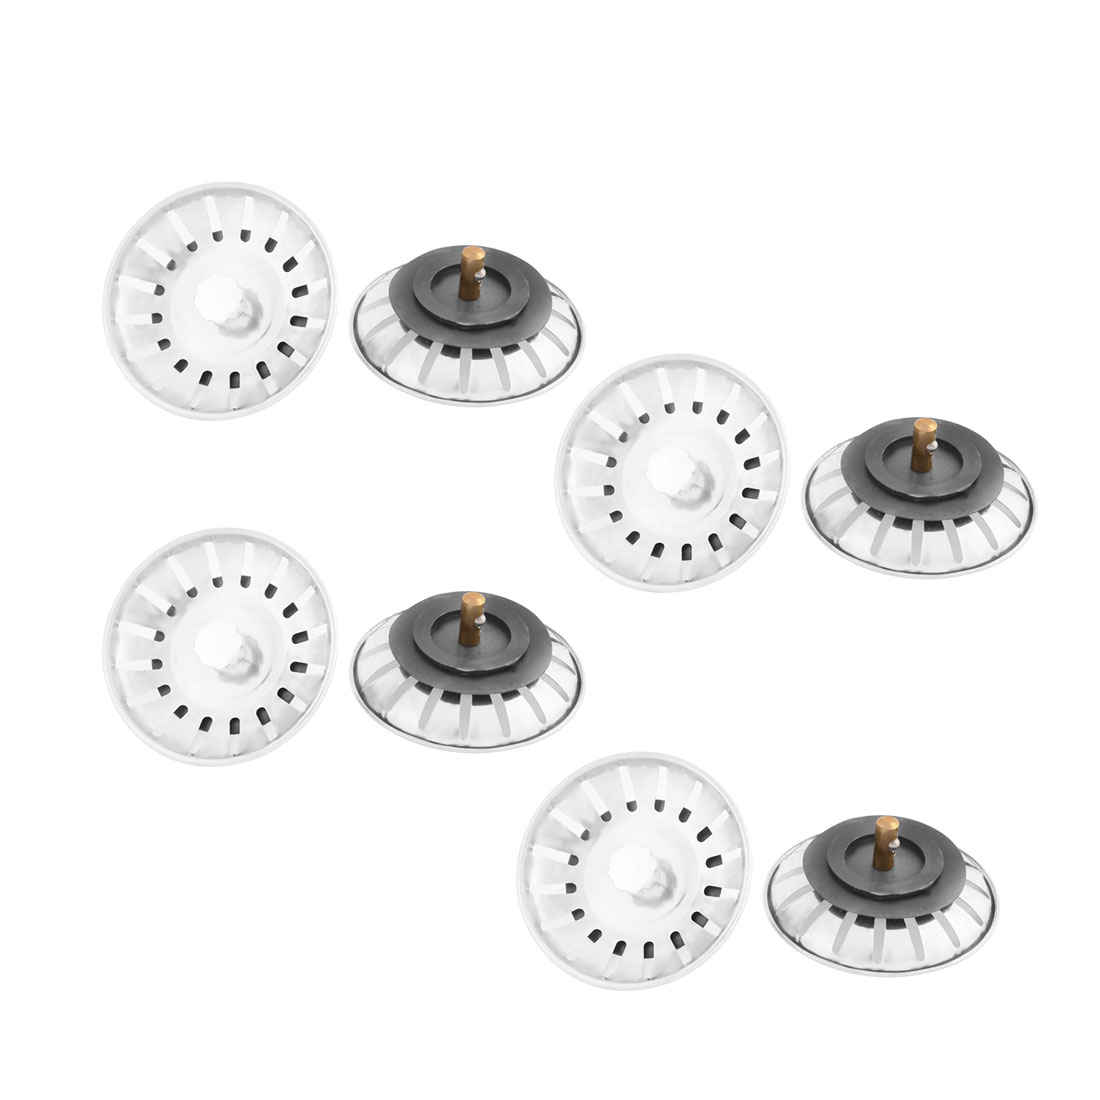 Kitchen Bathroom Mesh Hole Basin Disposer Sink Drain Strainer Stopper Silver Tone 8pcs